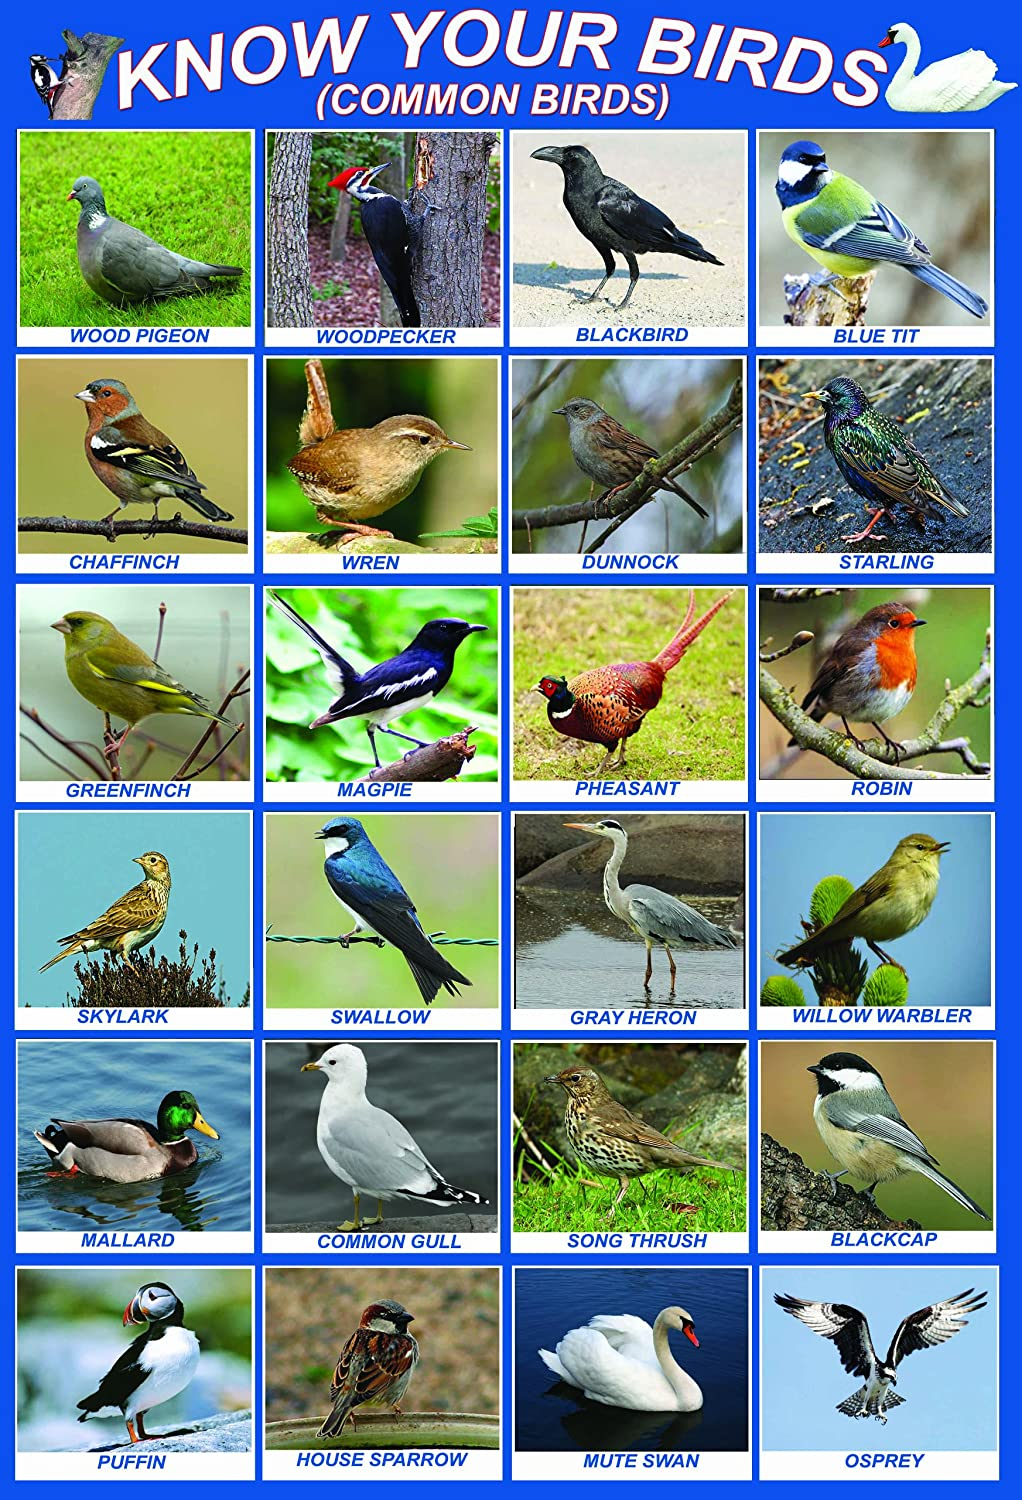 Wonderful Birds Of Britain Poster  Common Garden Birds  Paper Laminated  With Interesting Laminated Know Your Birds  British Uk England Great Britain Native Birds   Wildlife  Educational With Beauteous Garden Also Garden Speaker In Addition Emu Garden Furniture Uk And Garden Pond Bridge As Well As Oldest Botanical Garden In The World Additionally Landscape Gardening Ideas For Small Gardens From Amazoncouk With   Interesting Birds Of Britain Poster  Common Garden Birds  Paper Laminated  With Beauteous Laminated Know Your Birds  British Uk England Great Britain Native Birds   Wildlife  Educational And Wonderful Garden Also Garden Speaker In Addition Emu Garden Furniture Uk From Amazoncouk